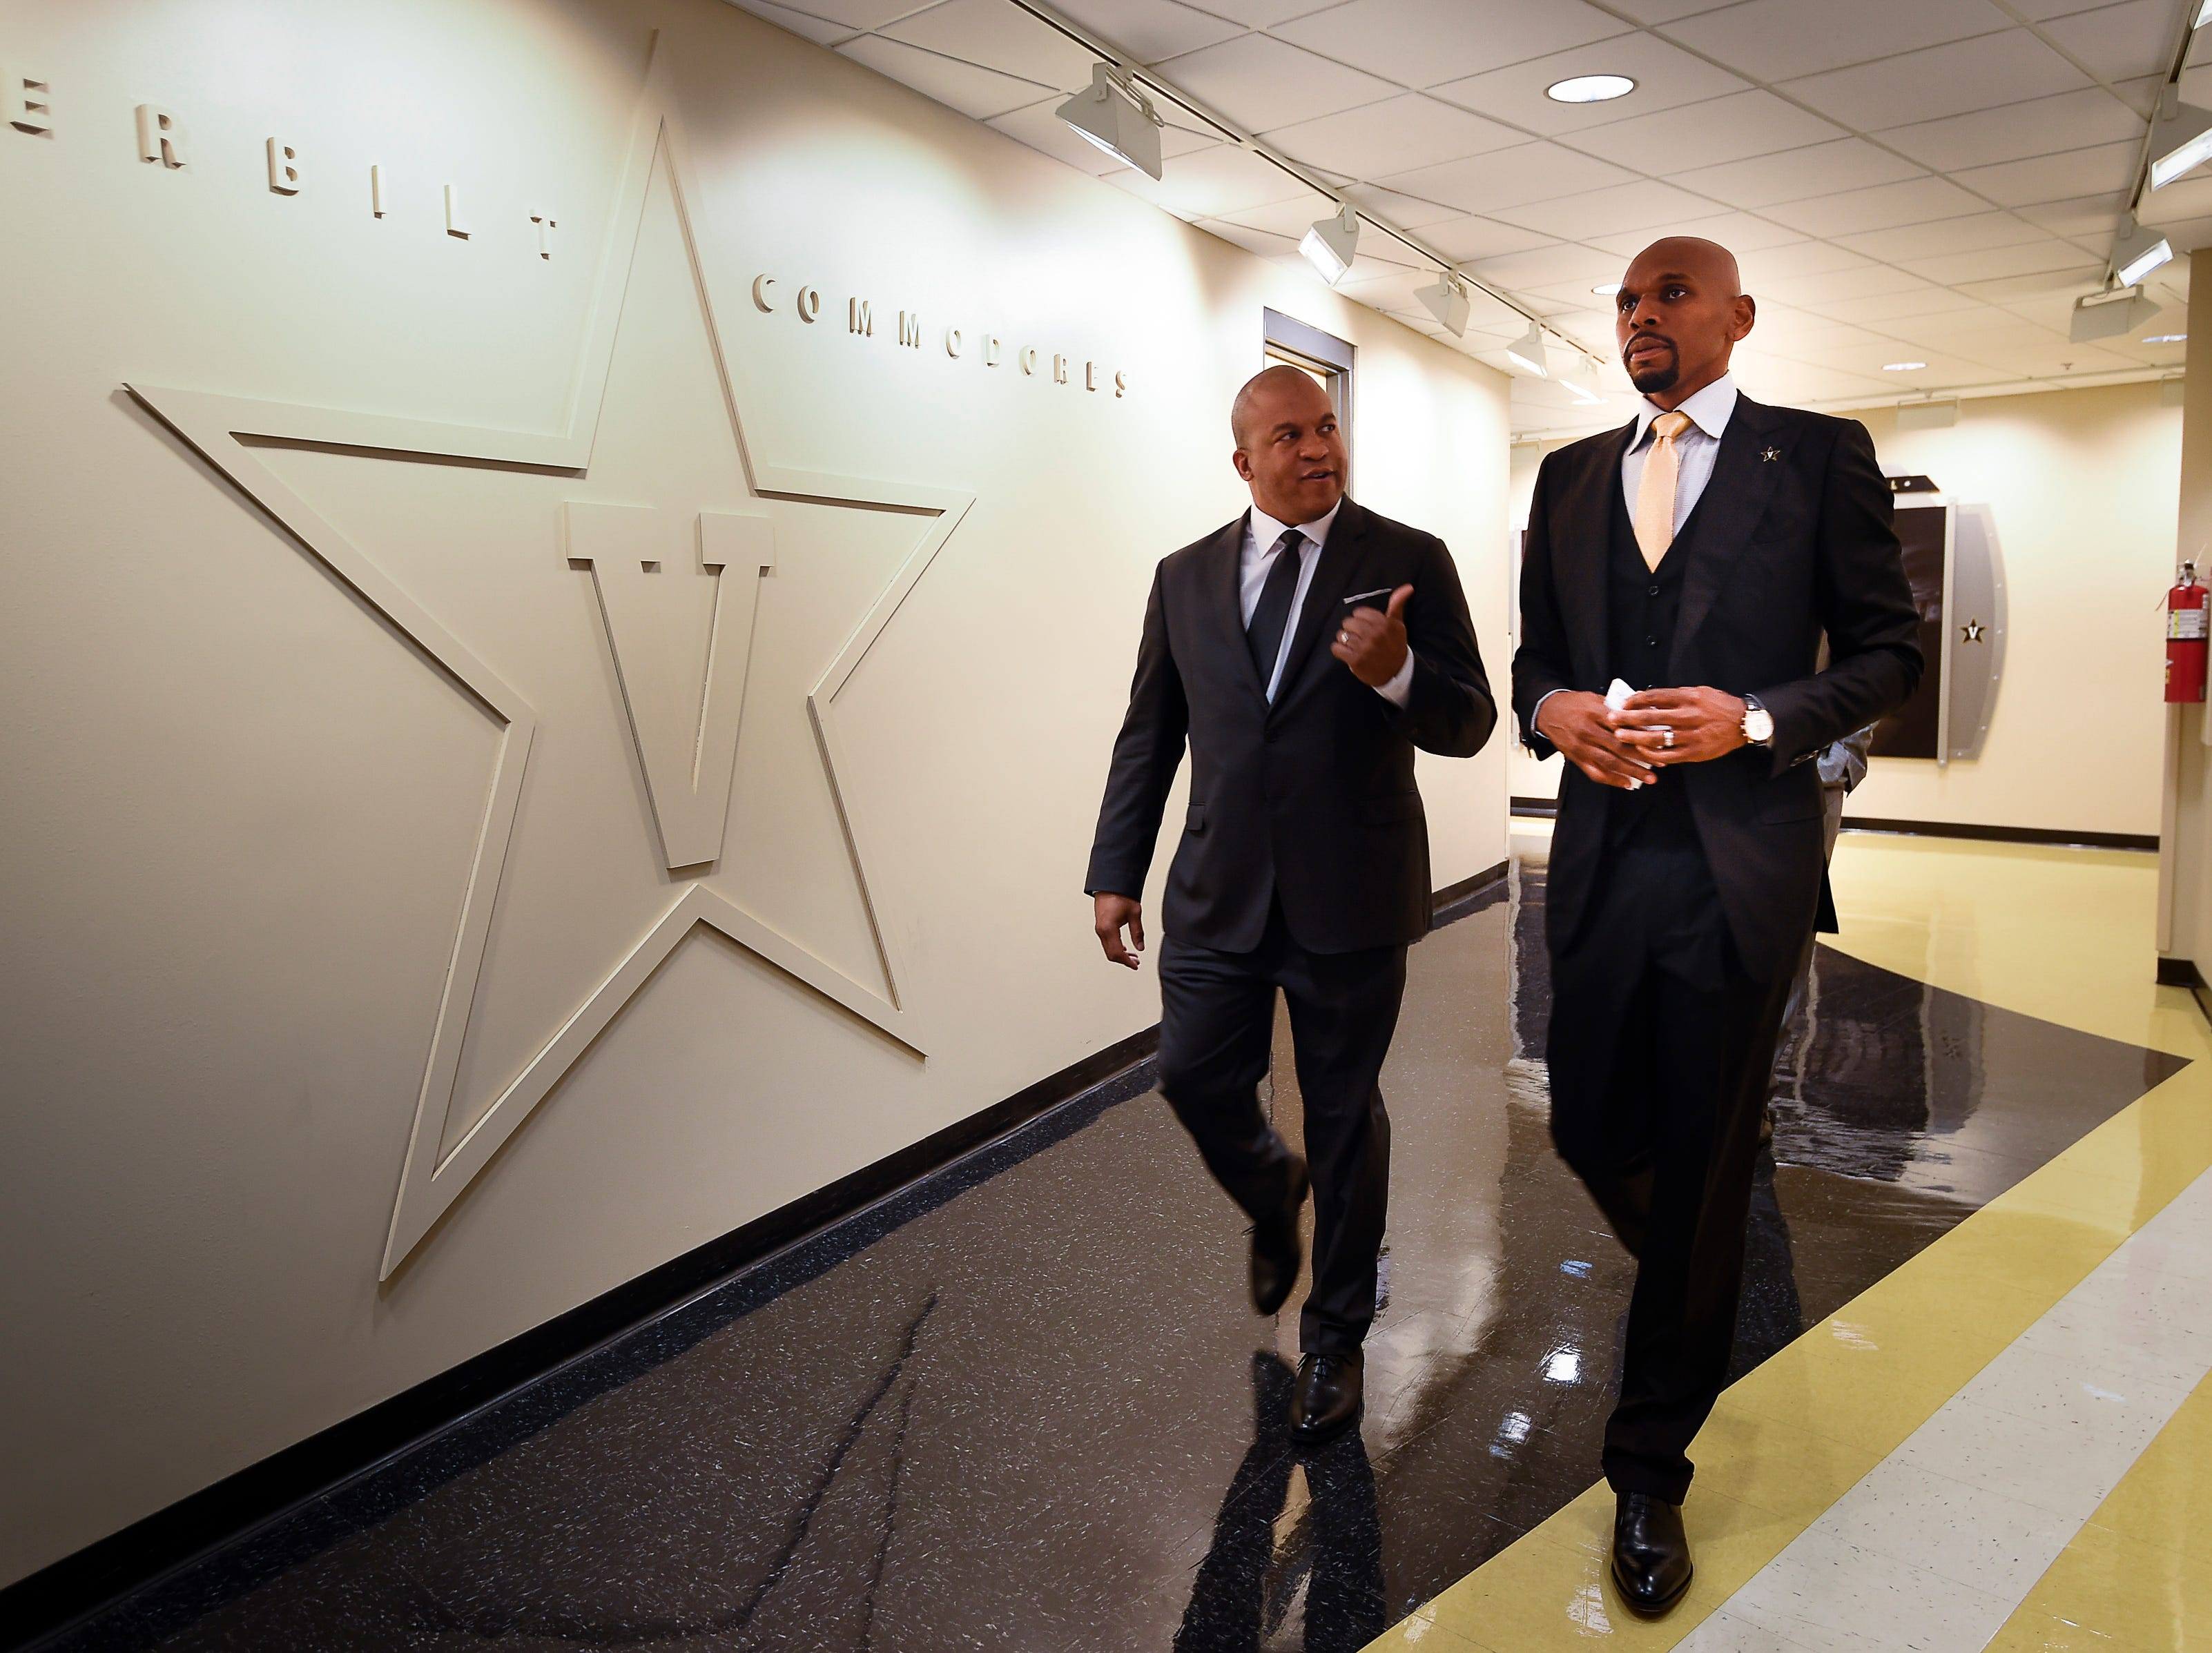 Vanderbilt athletic director Malcolm Turner walks with new basketball coach Jerry Stackhouse to his introductory press conference at Memorial Gym Monday, April 8, 2019 in Nashville, Tenn.